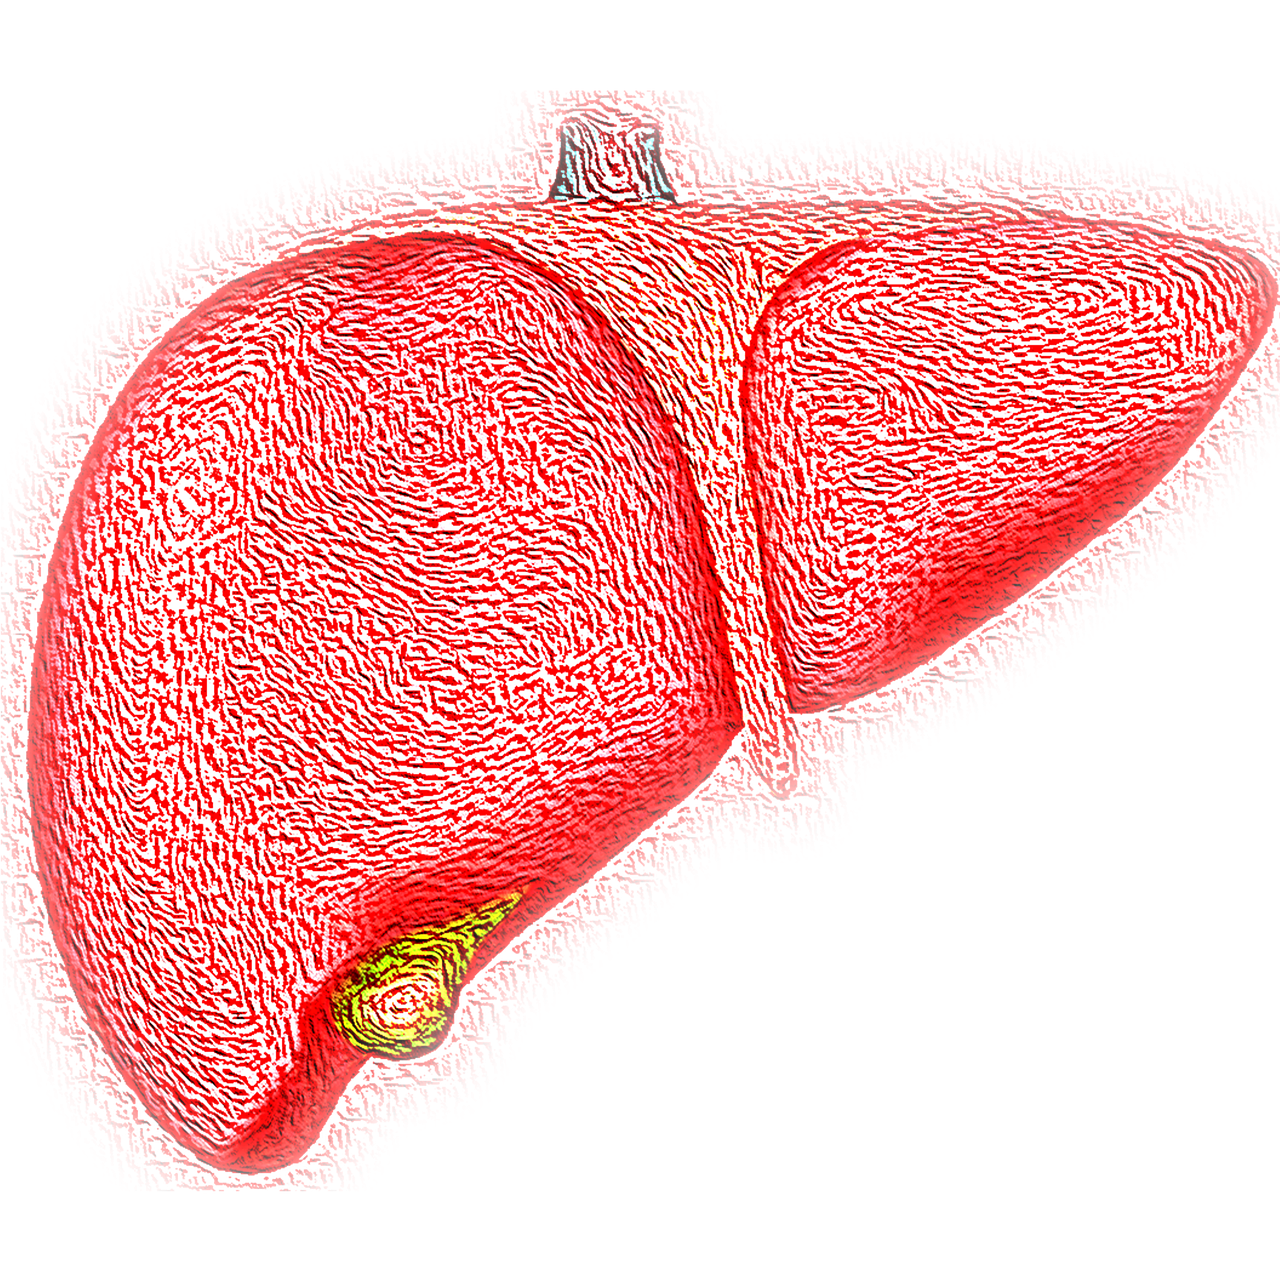 liver links to article